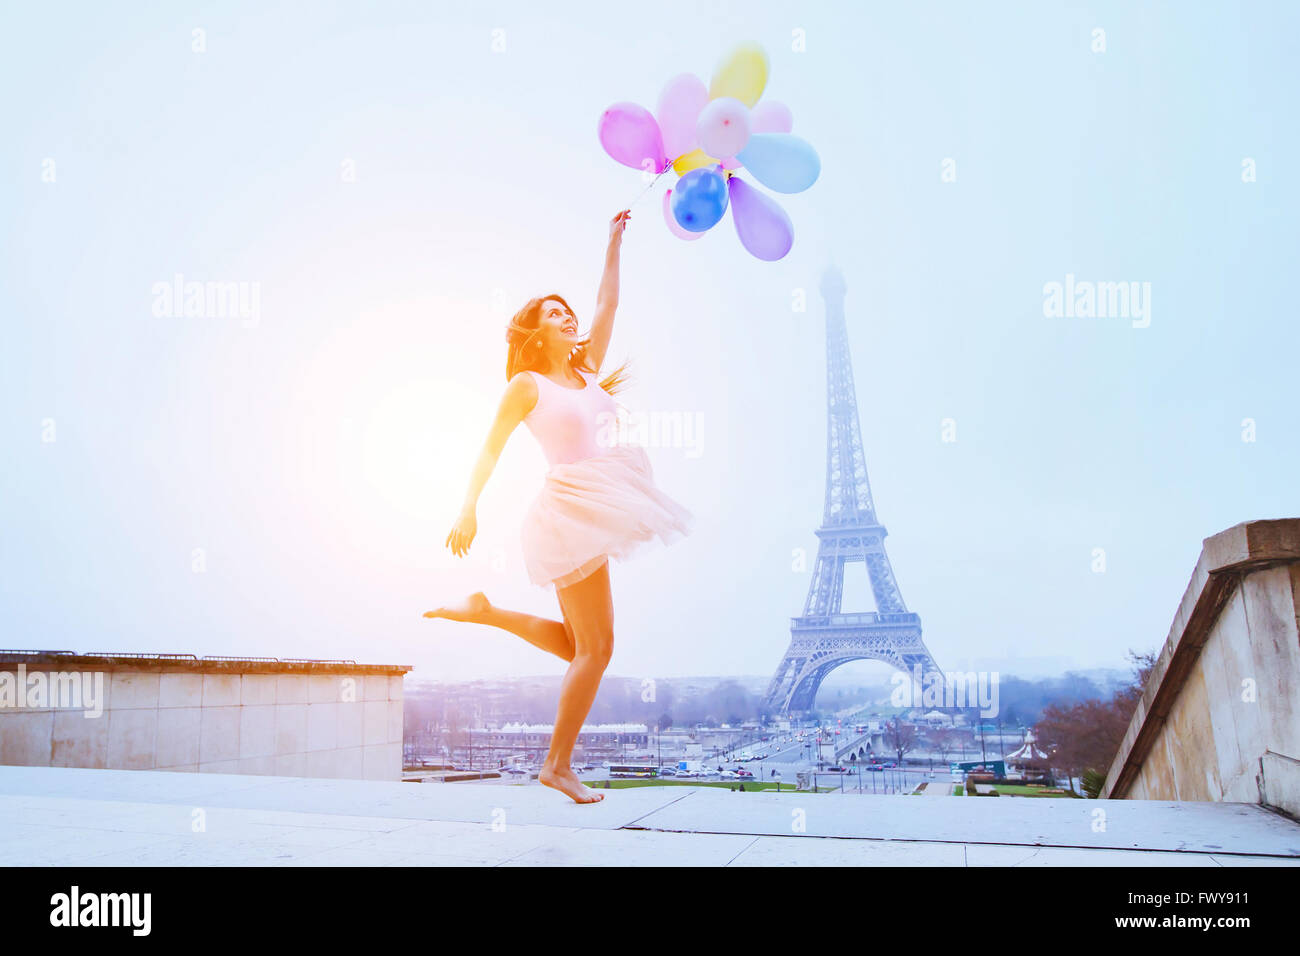 dream travel, girl with balloons jumping near Eiffel Tower in Paris - Stock Image